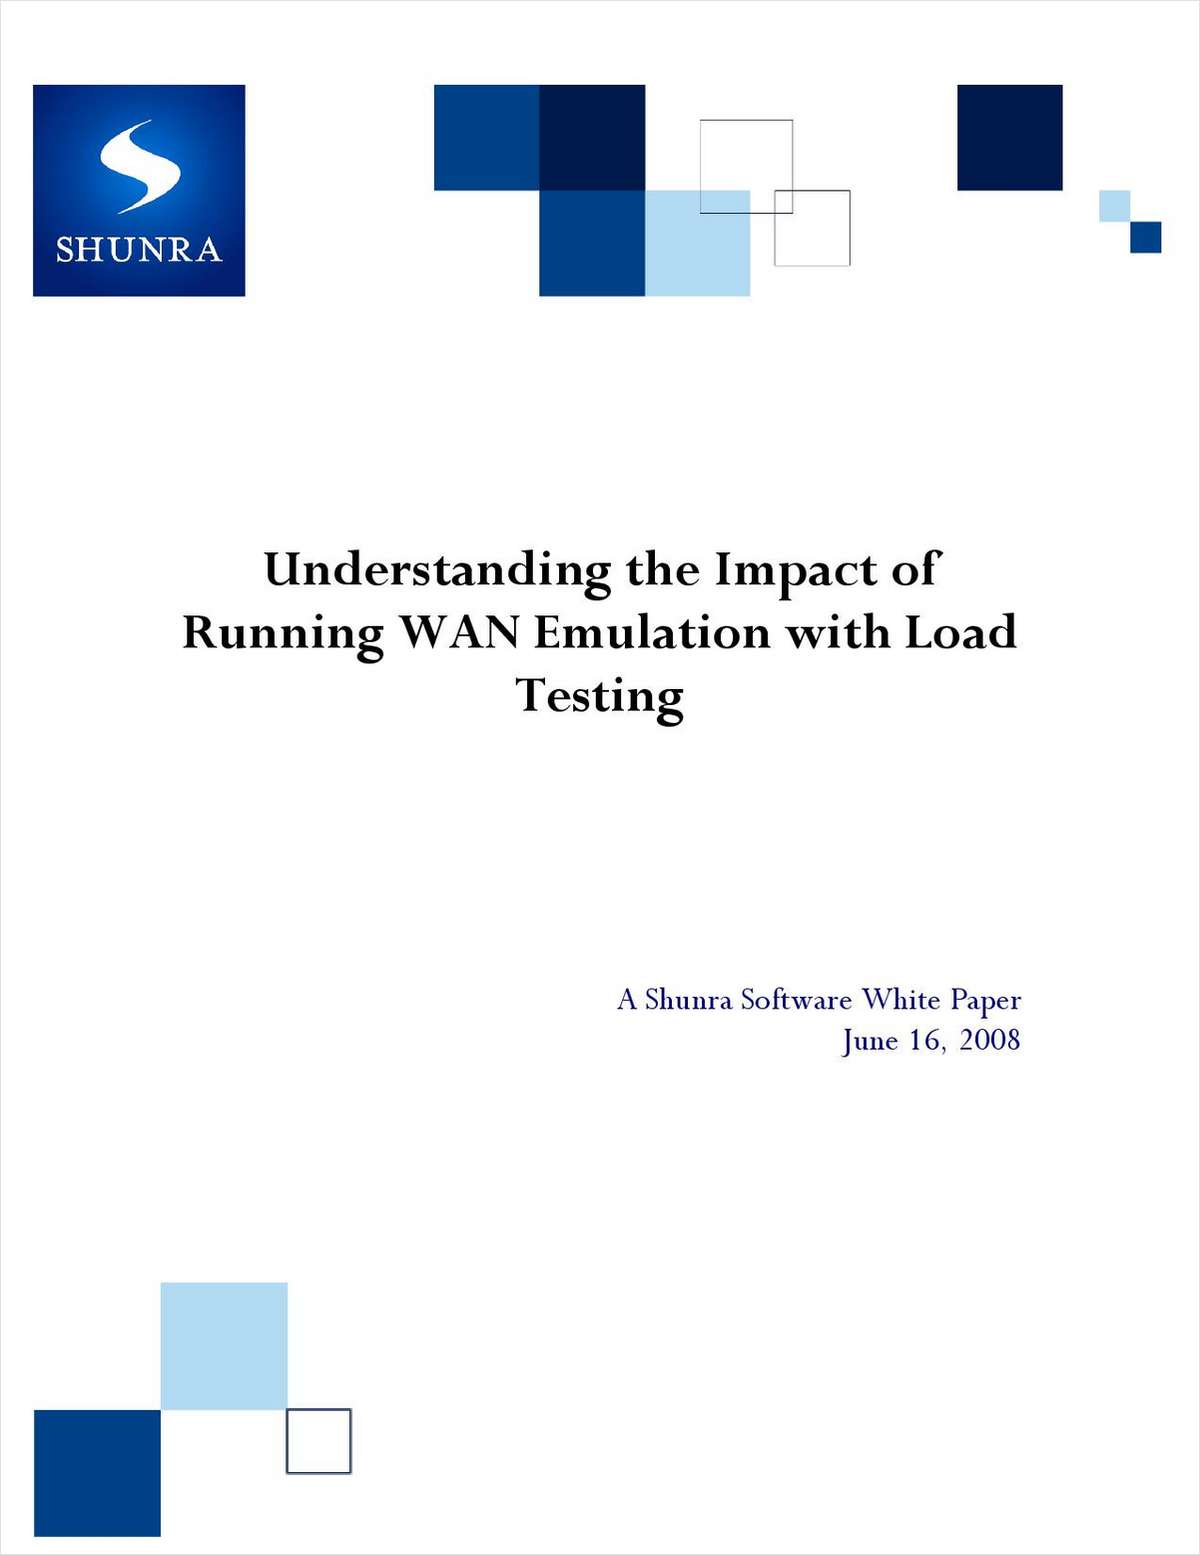 Understanding the Impact of Running WAN Emulation with Load Testing